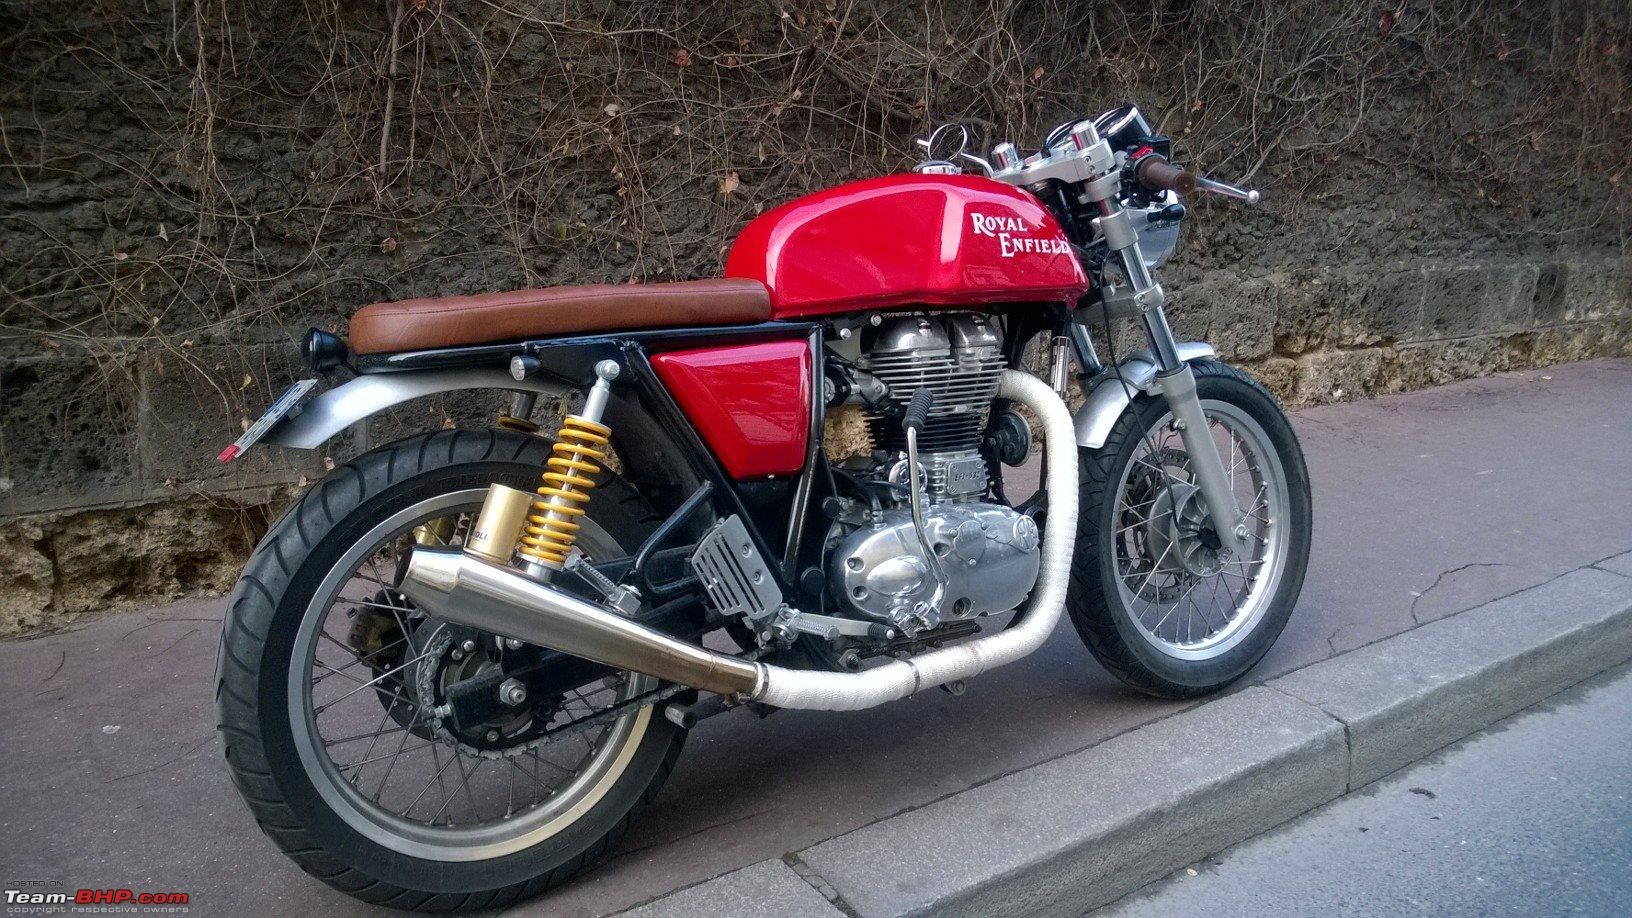 royal enfield continental gt caf racer you 39 ll need to drop it 2inches buscar con google. Black Bedroom Furniture Sets. Home Design Ideas